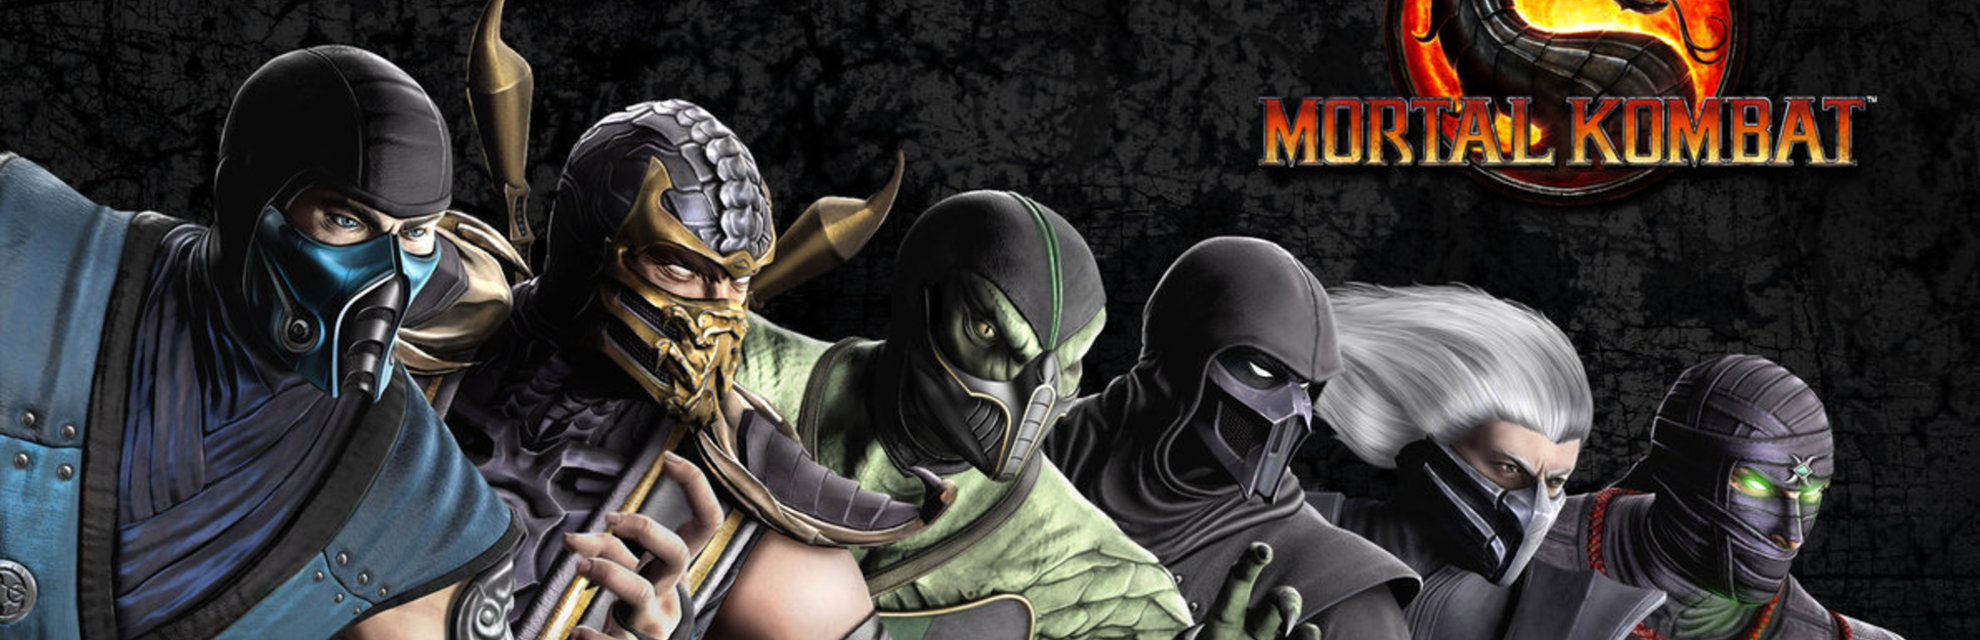 Cryptic Shinobi blog header photo